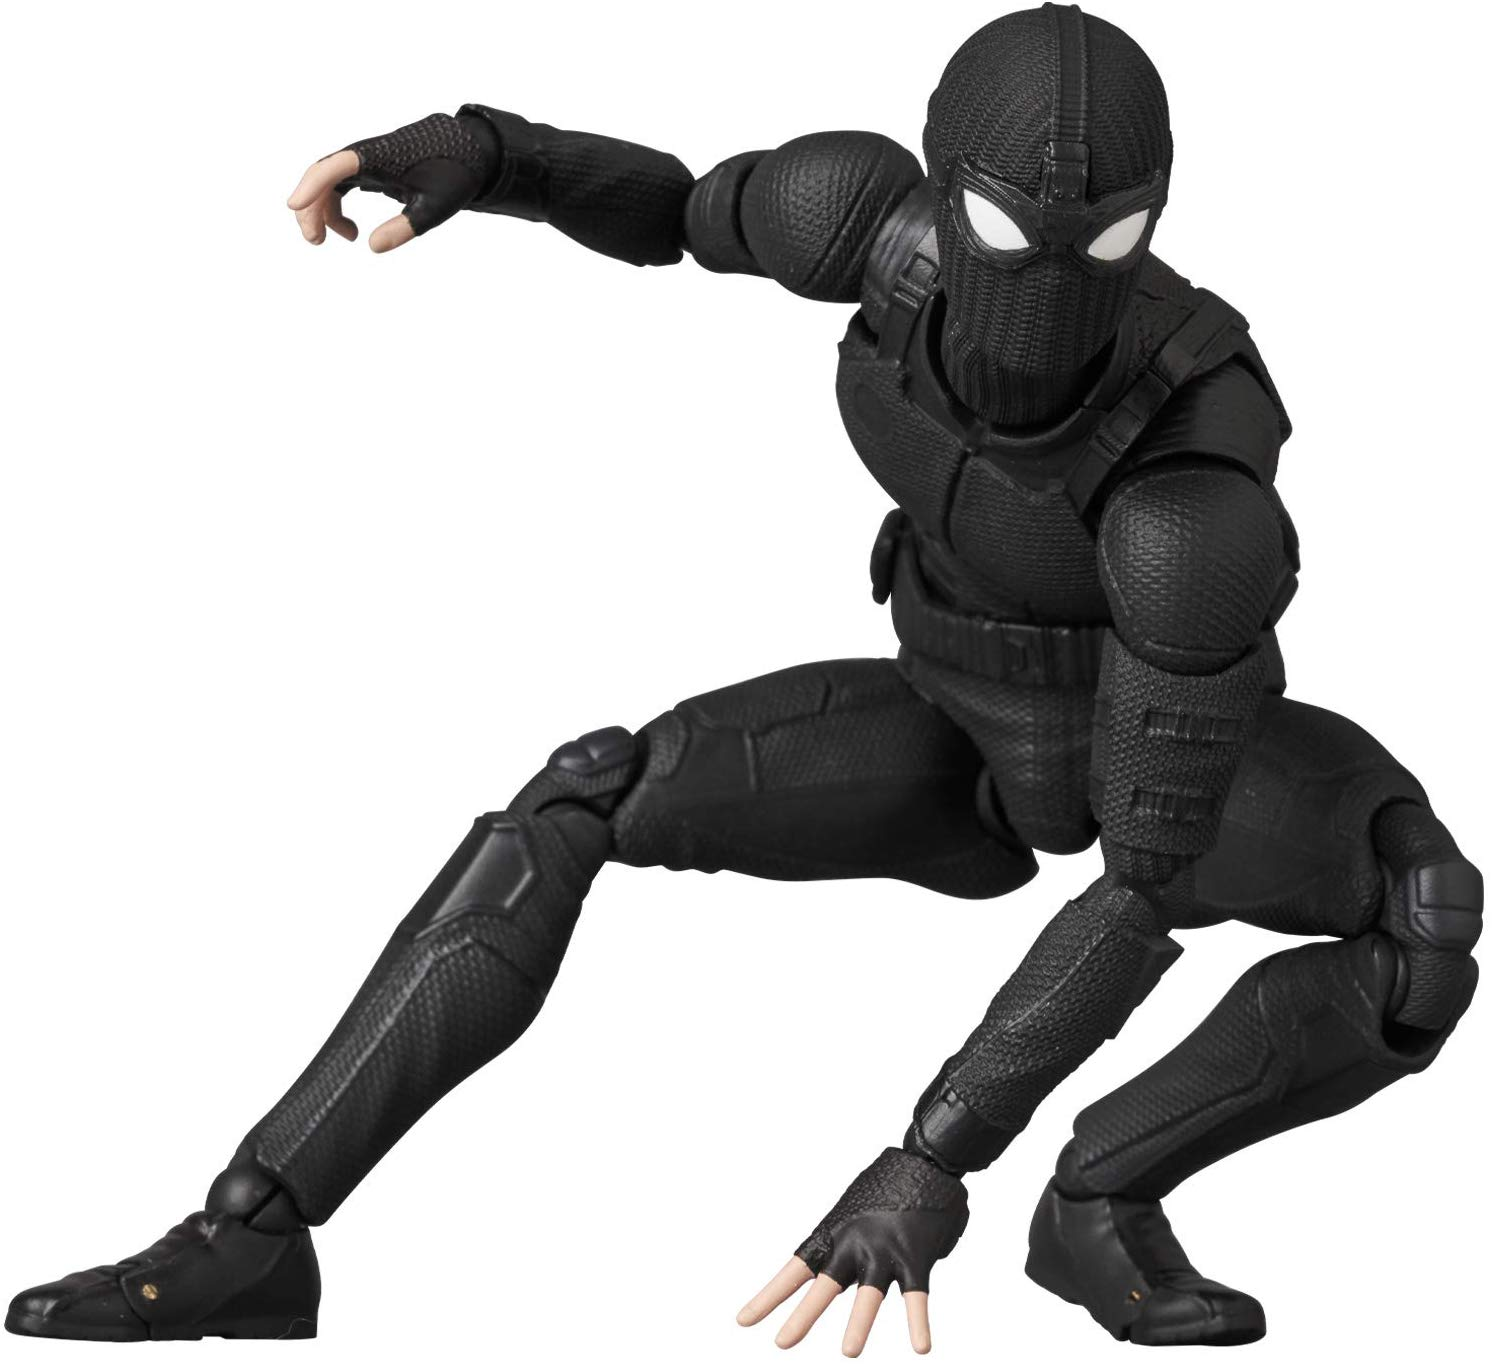 MAFEX-Stealth-Suit-Spider-Man